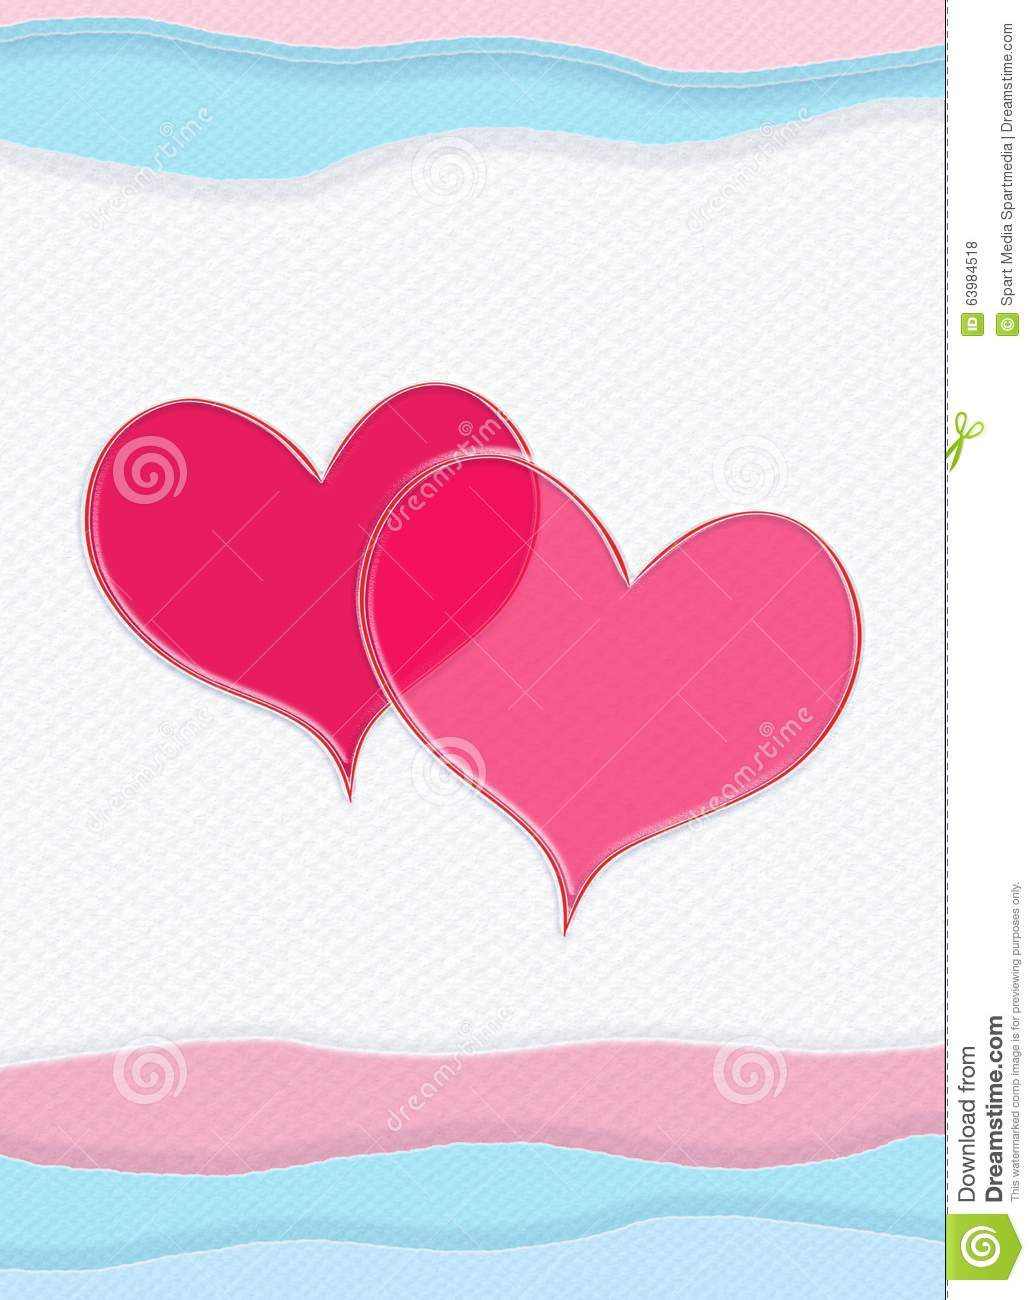 Happy Valentines Day Valentine Card Vertical Composition Stock